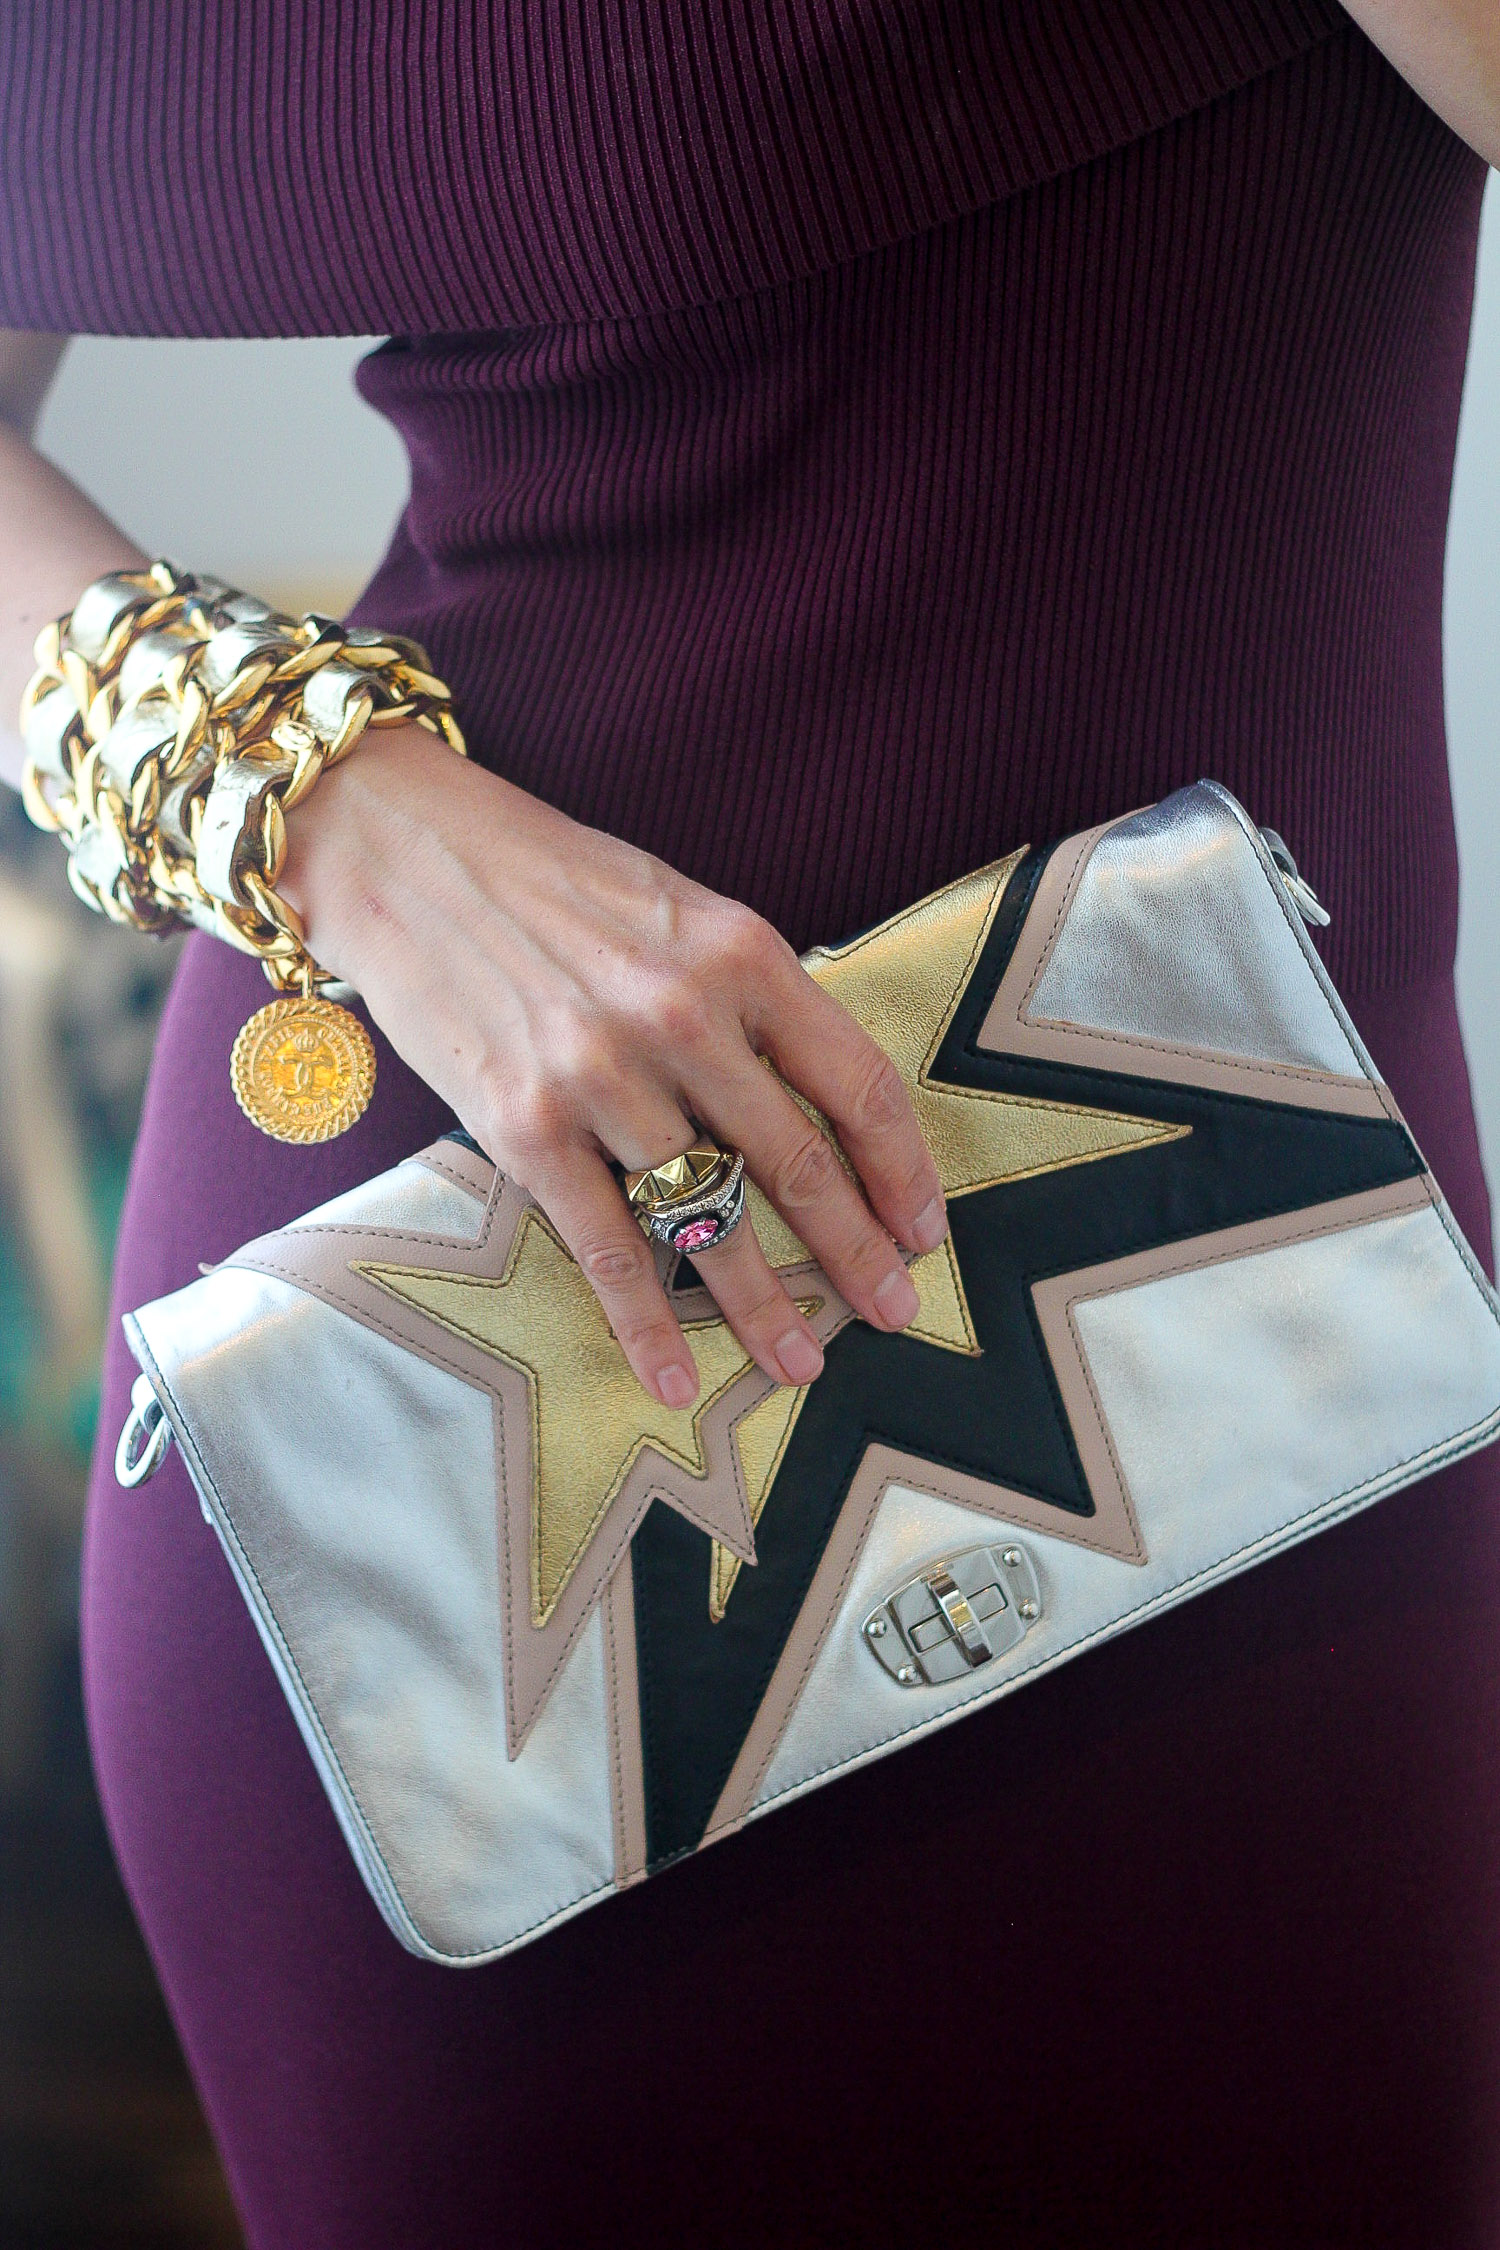 miu miu star kapow clutch and chanel belt worn as bracelet